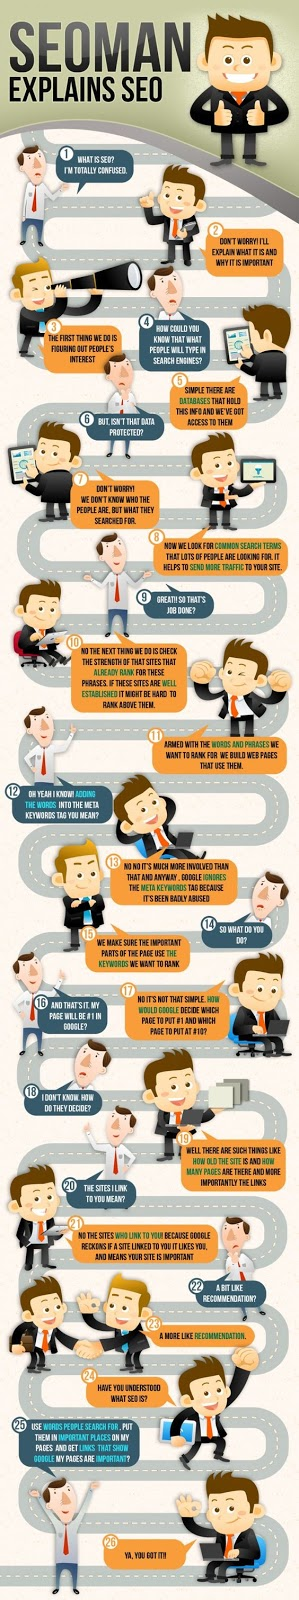 Excellent Infographic About SEO